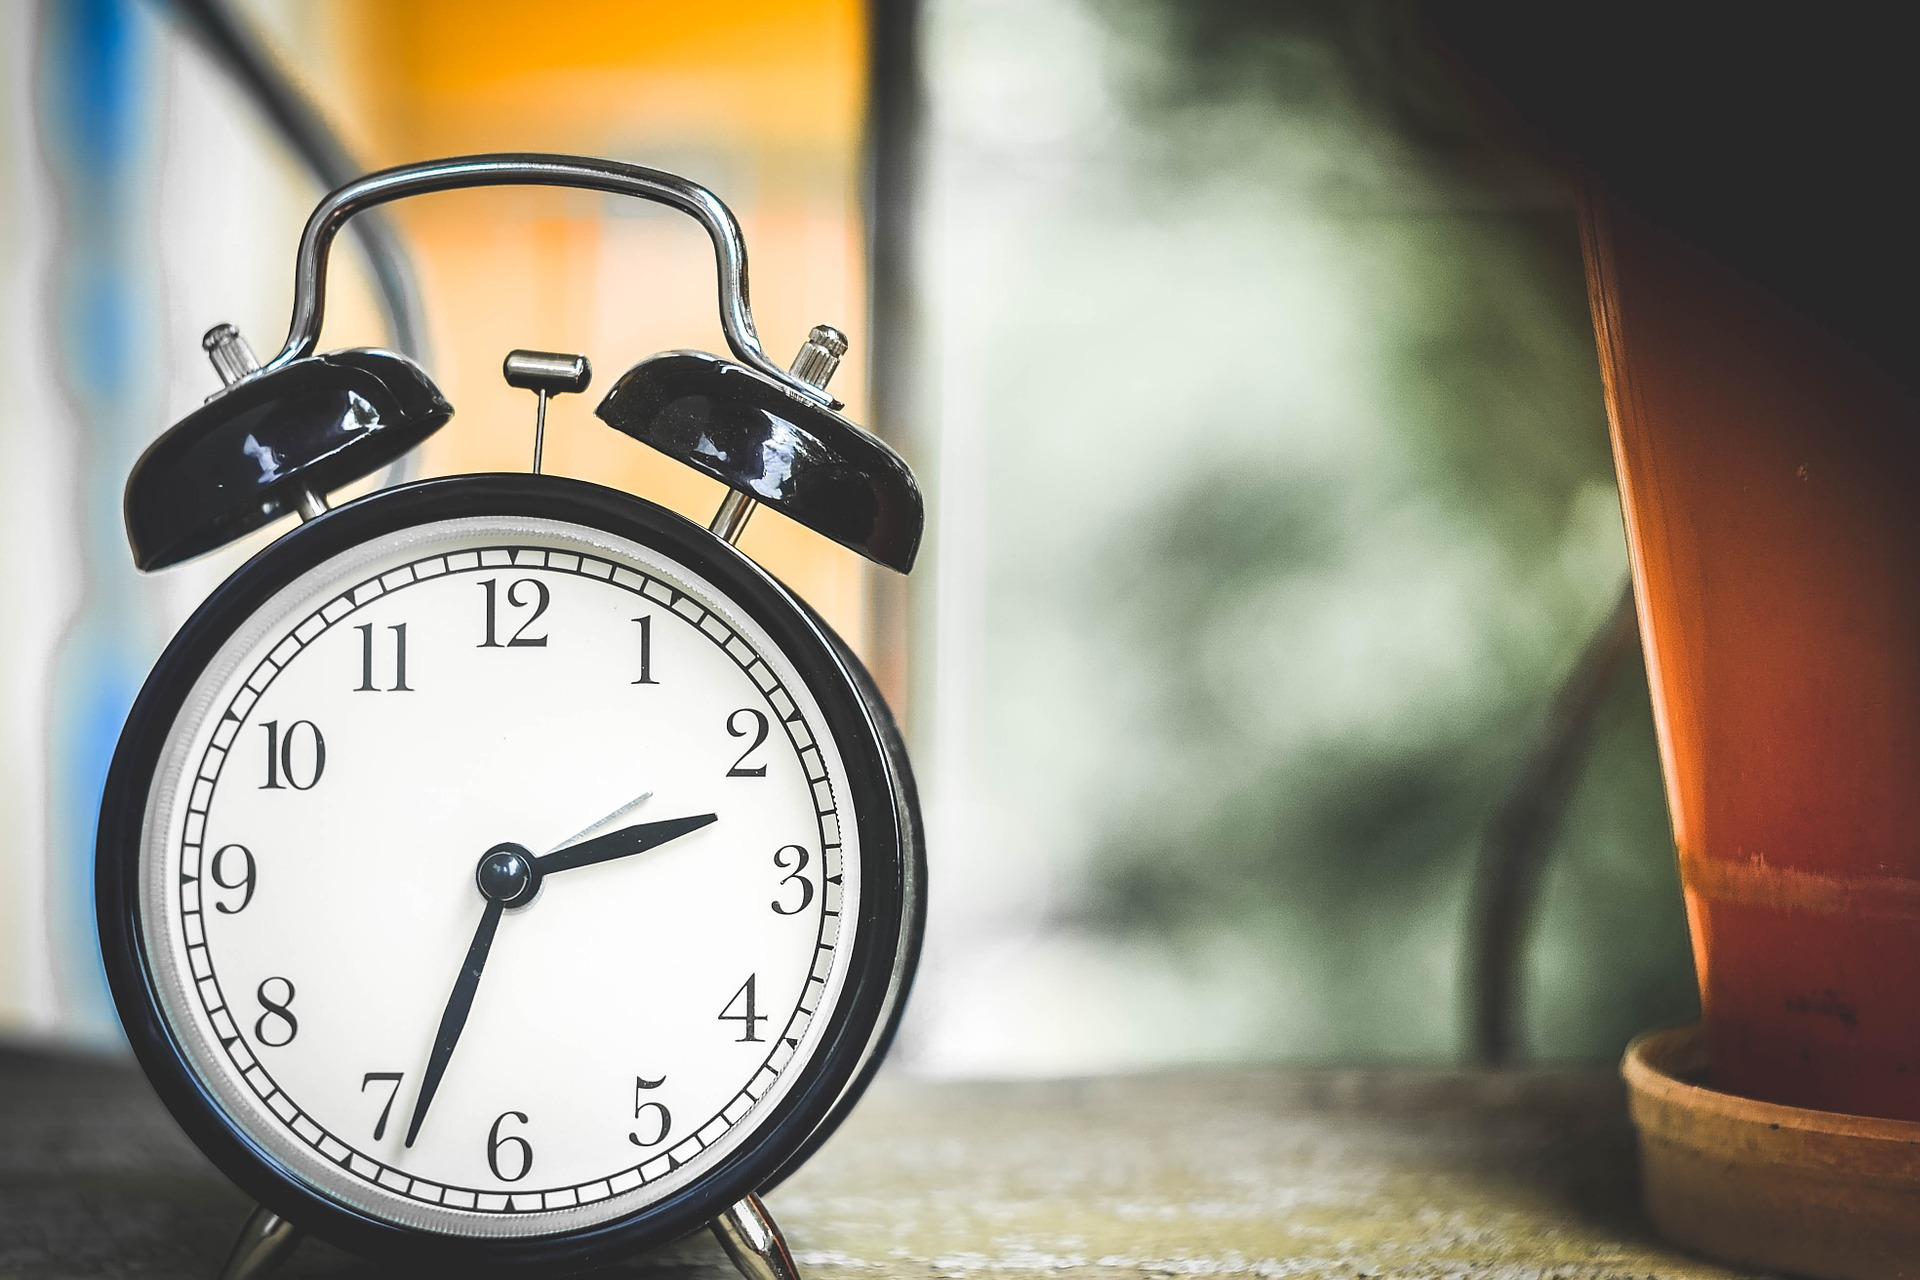 3 Reasons To Have Website Personalization - Timing